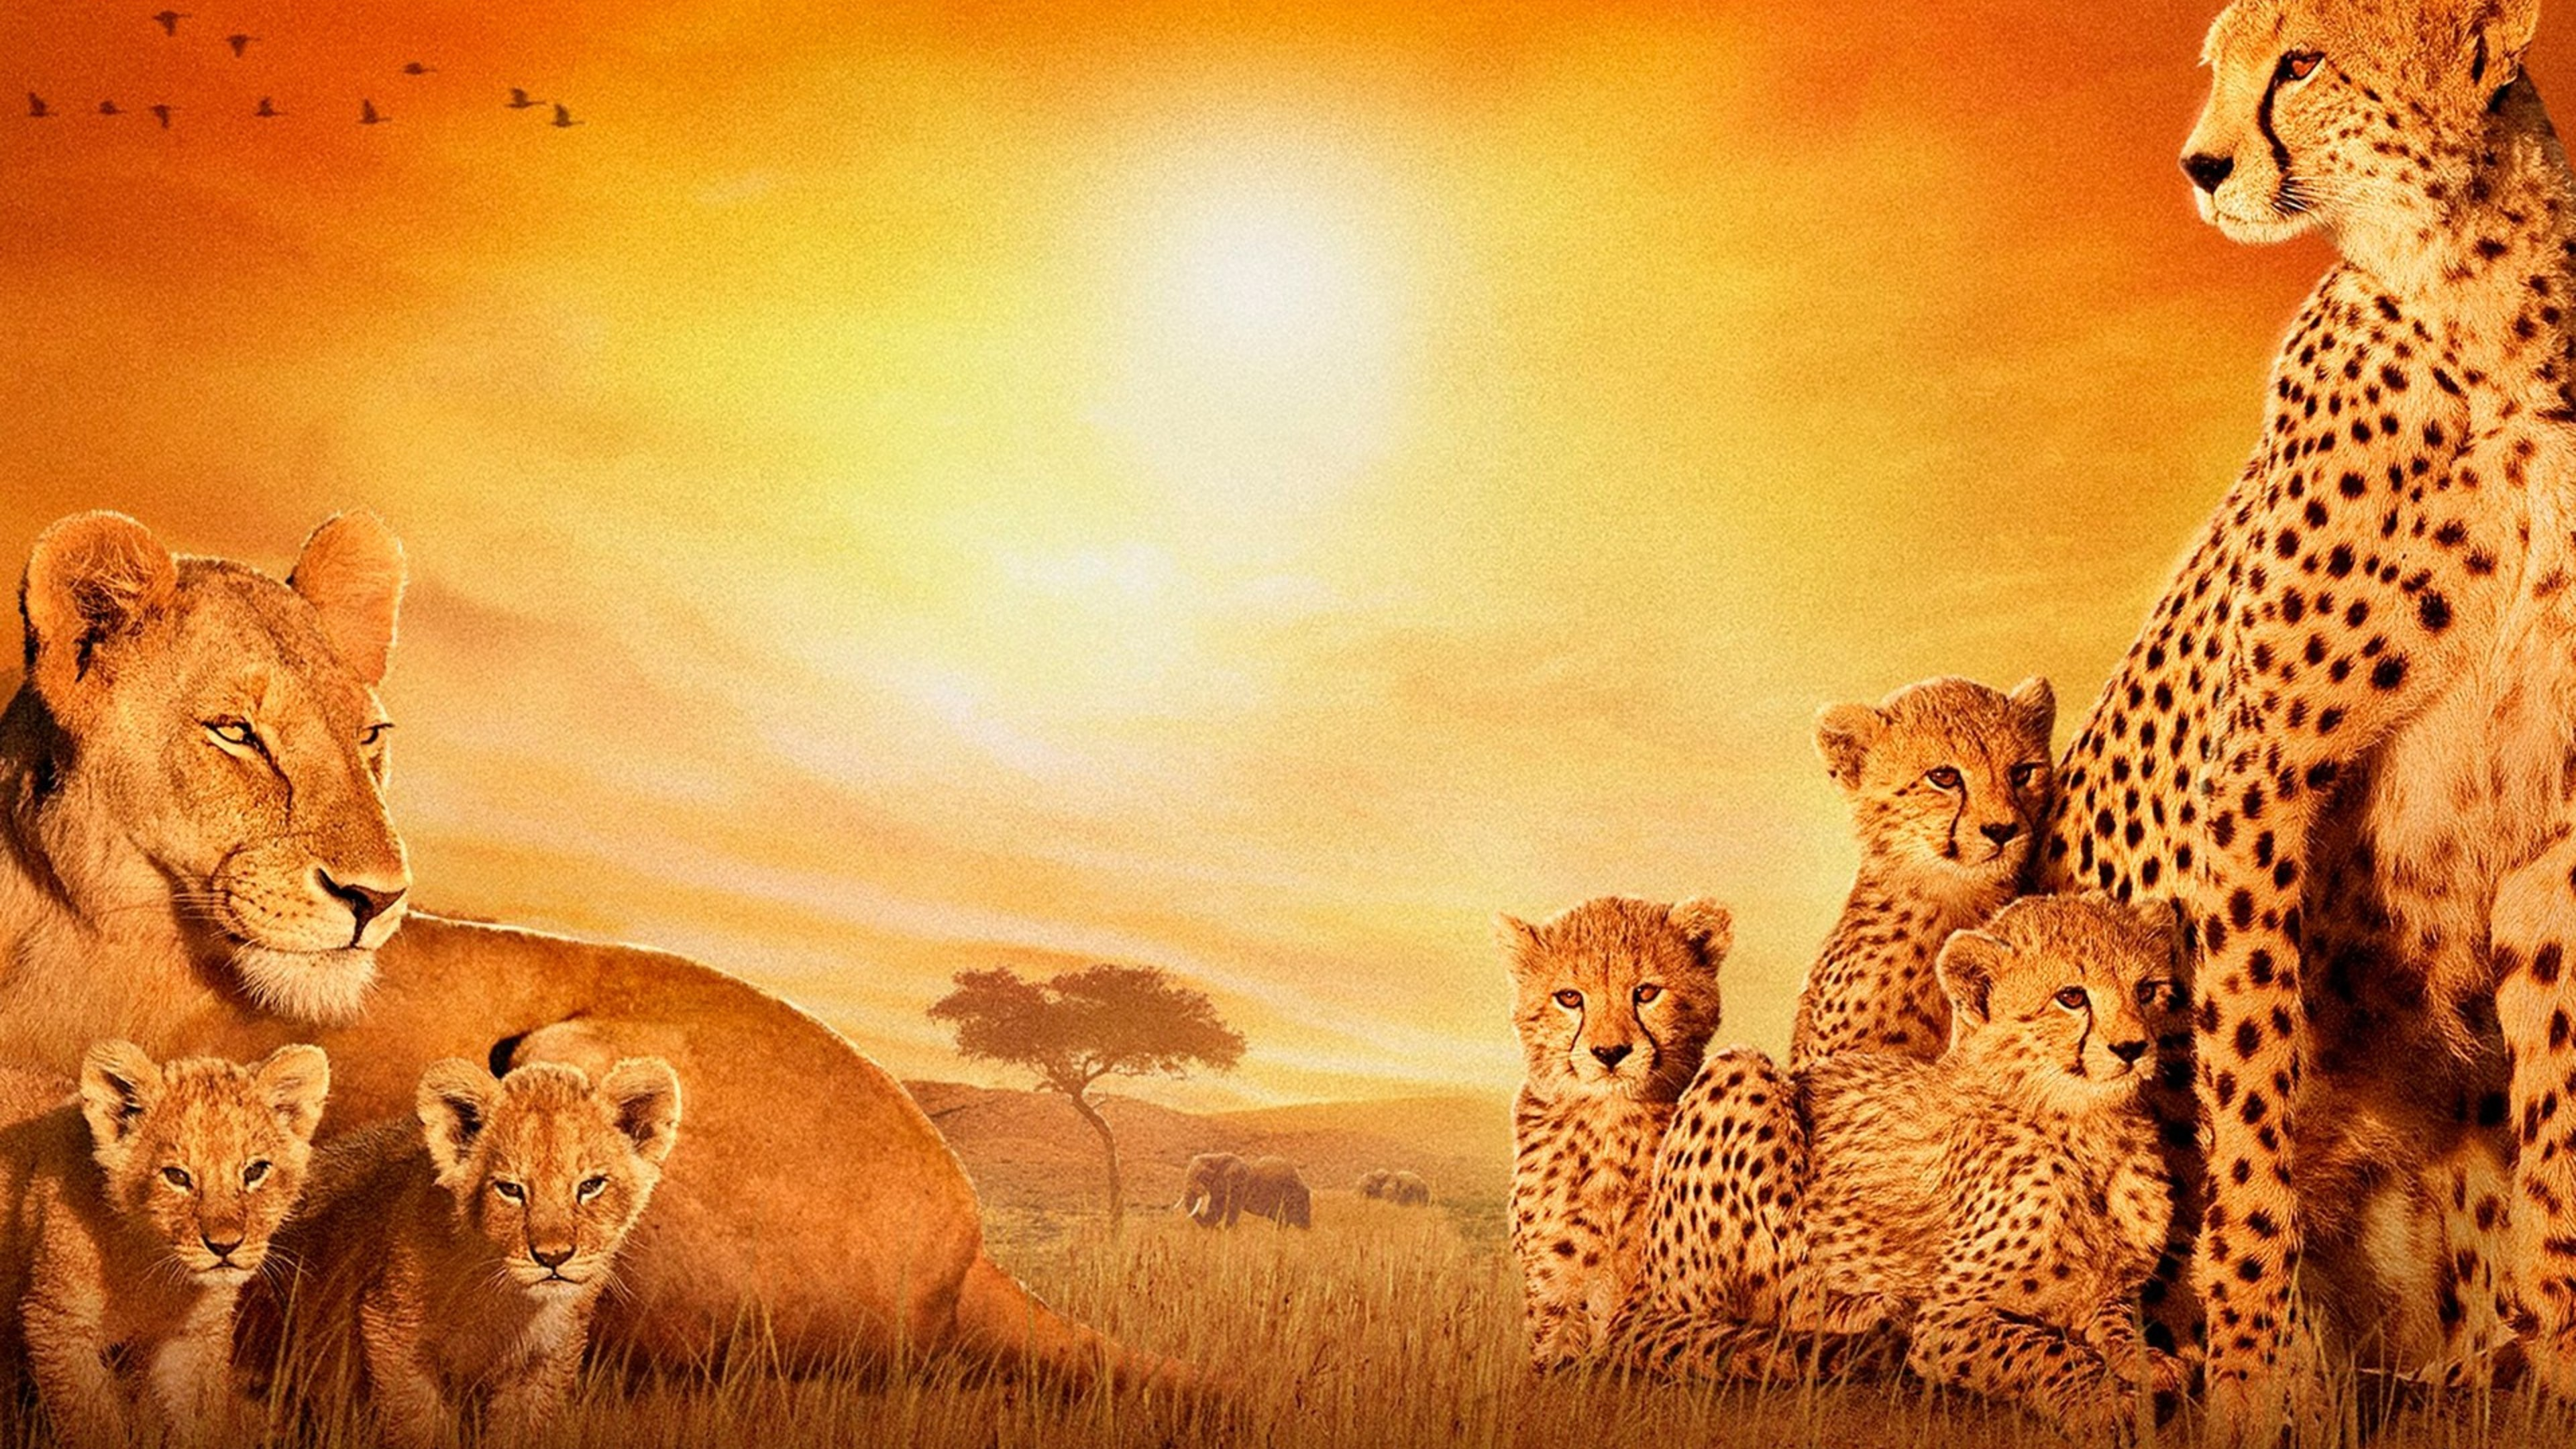 african cats 4k 1542238056 - African Cats 4k - lion wallpapers, cheetah wallpapers, cats wallpapers, animals wallpapers, african wallpapers